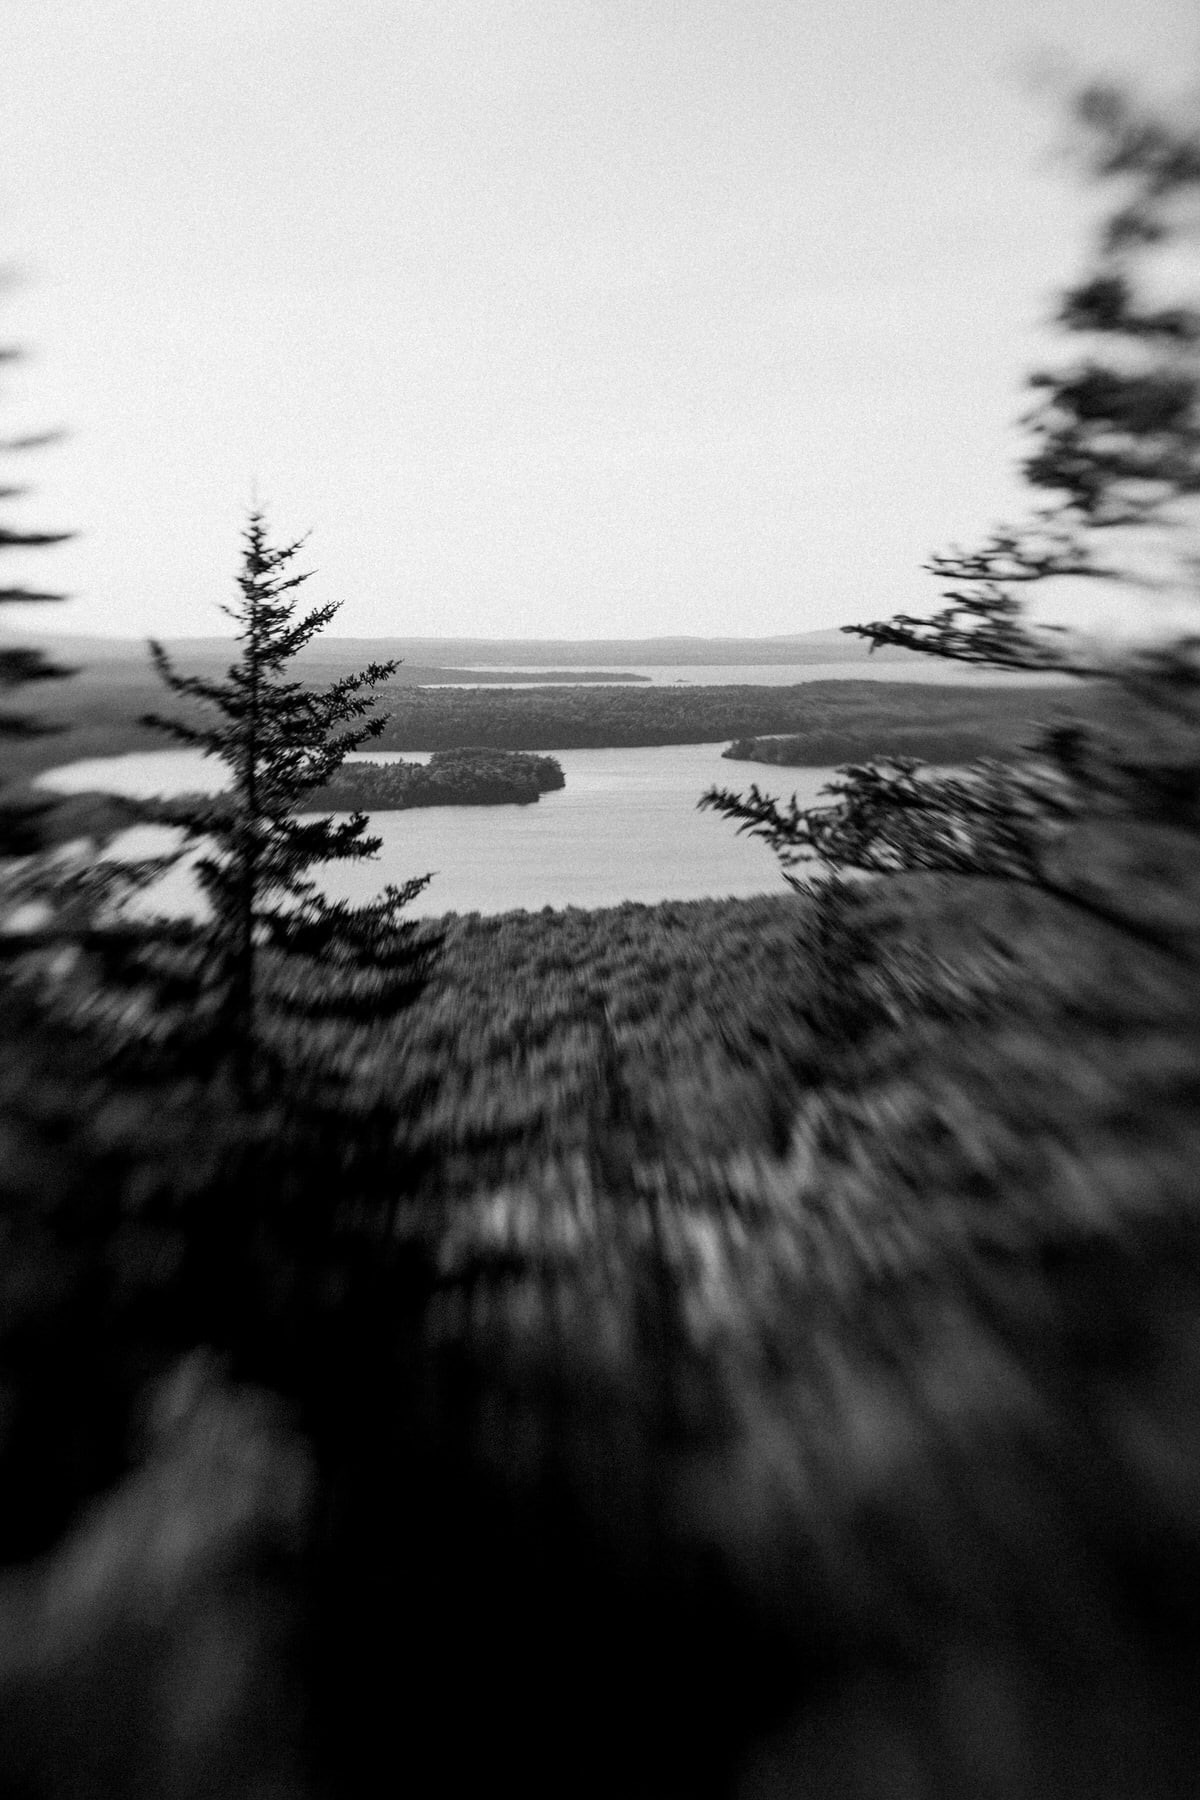 Acadia-National-Park-Maine-black-and-white-fine-art-photography-by-Studio-L-photographer-Laura-Schneider-_5503